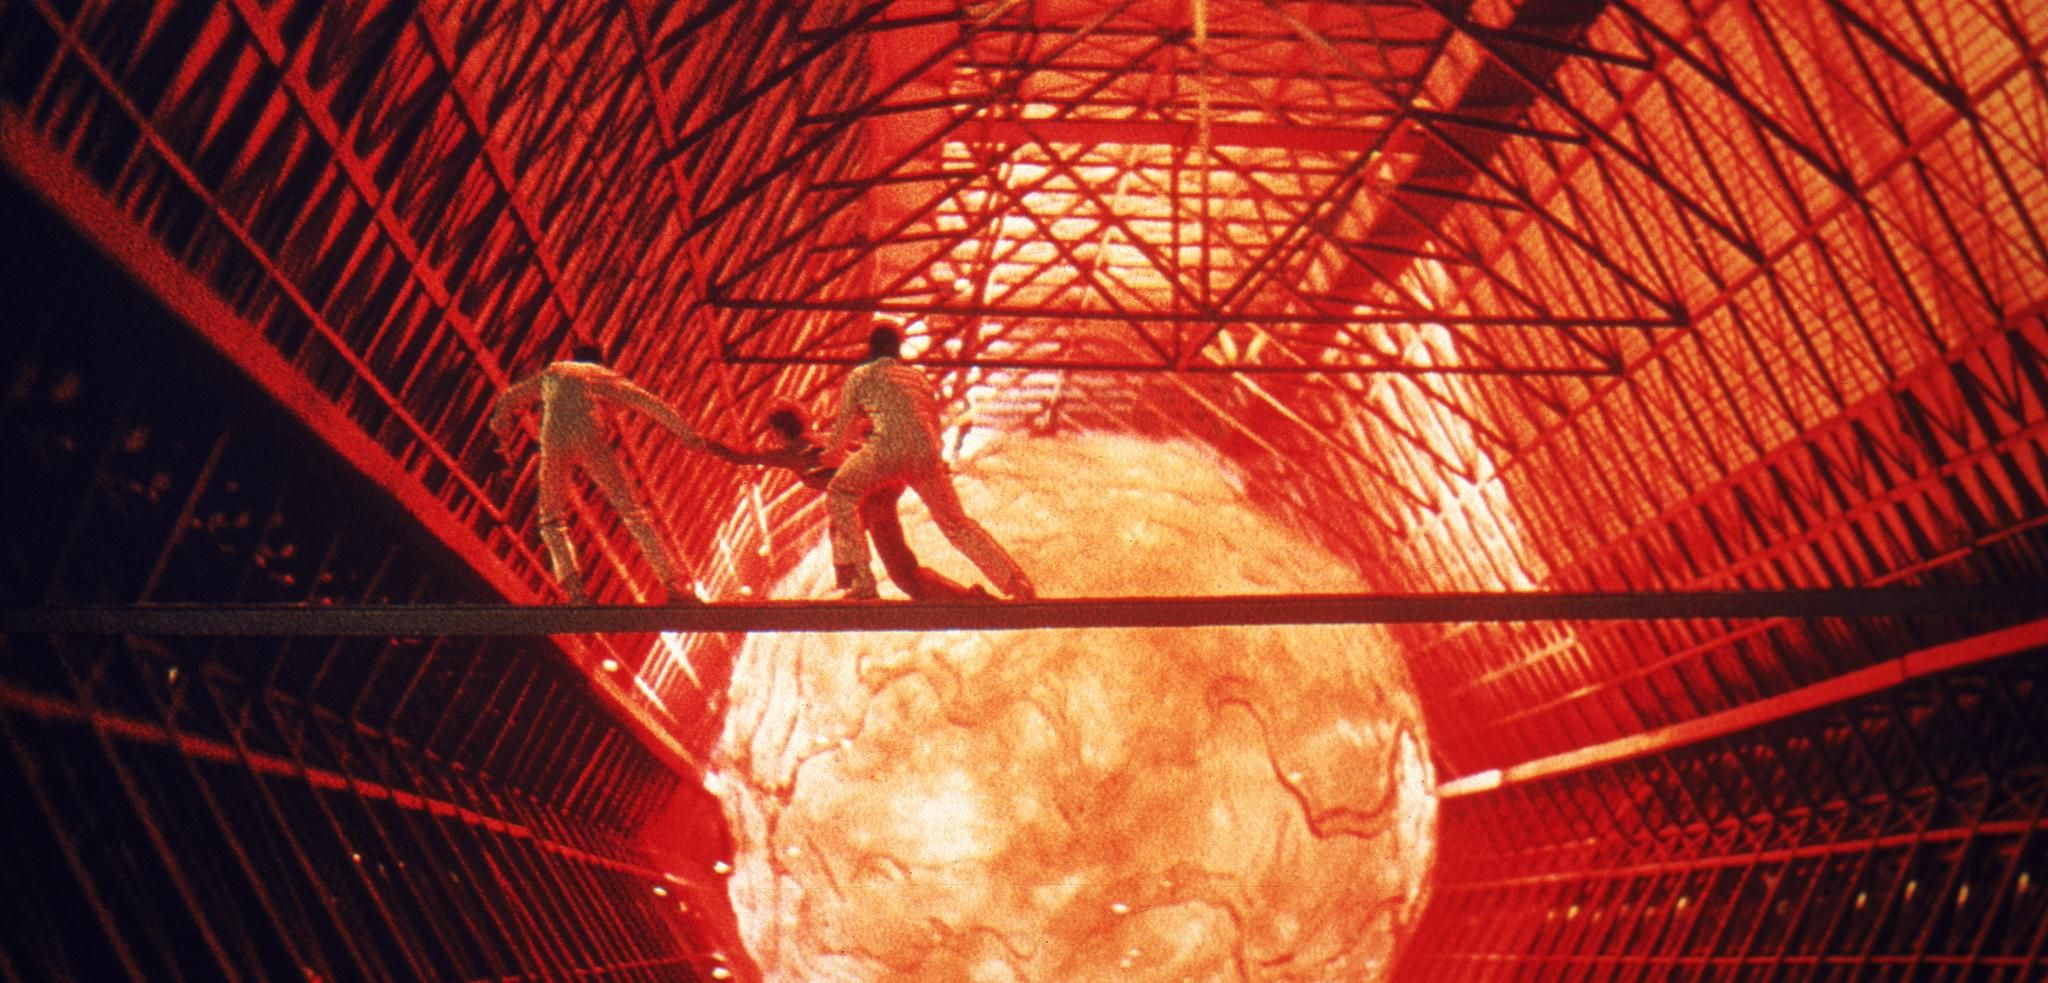 The Black Hole (1979) http://www.movpins.com/dHQwMDc4ODY5/the-black-hole-(1979)/still-2595336192